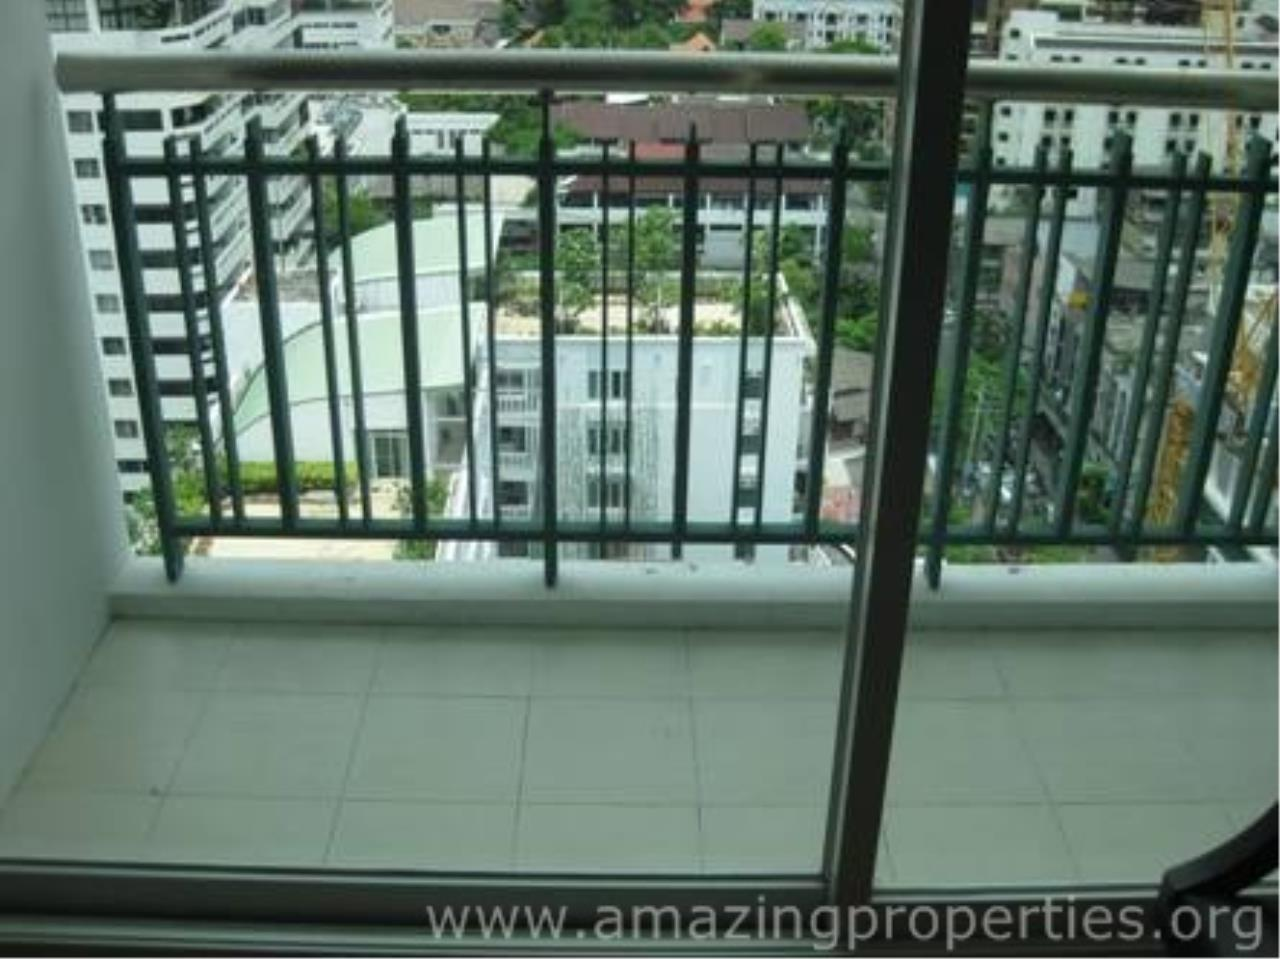 Amazing Properties Agency's 1 bedroom Apartment for rent 11